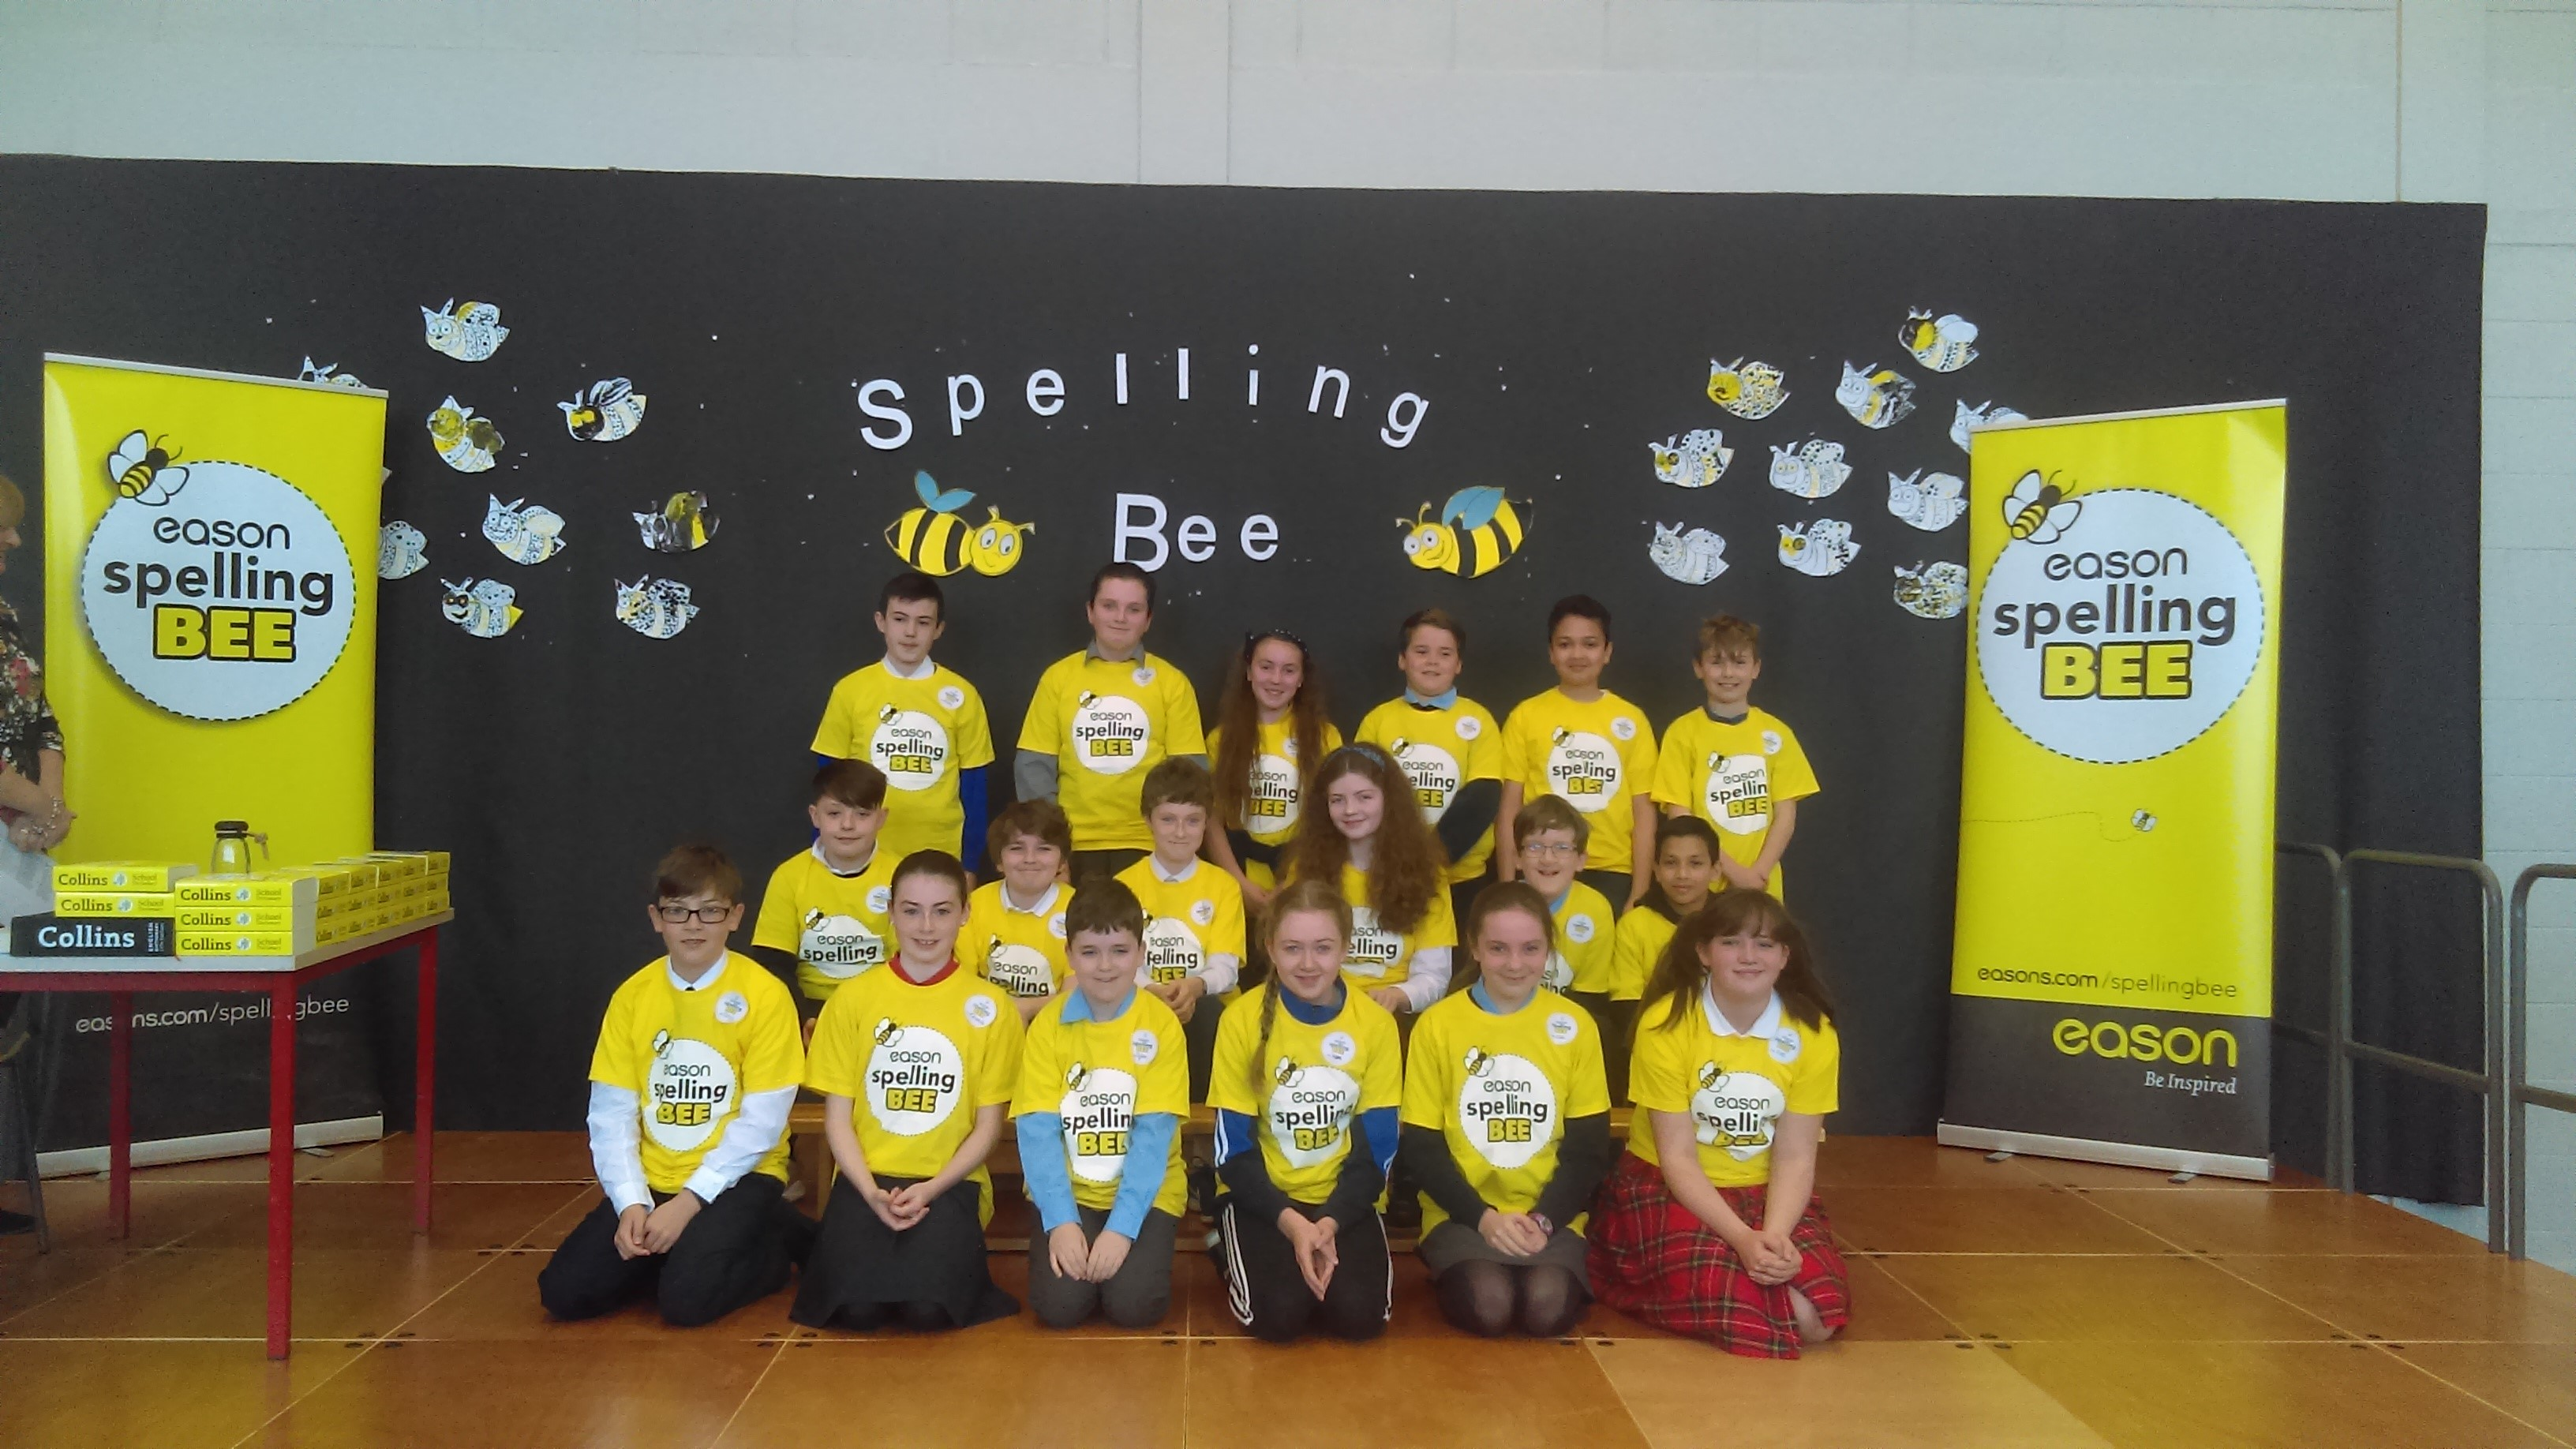 Spelling Bee 2019 - Wicklow Group Photo